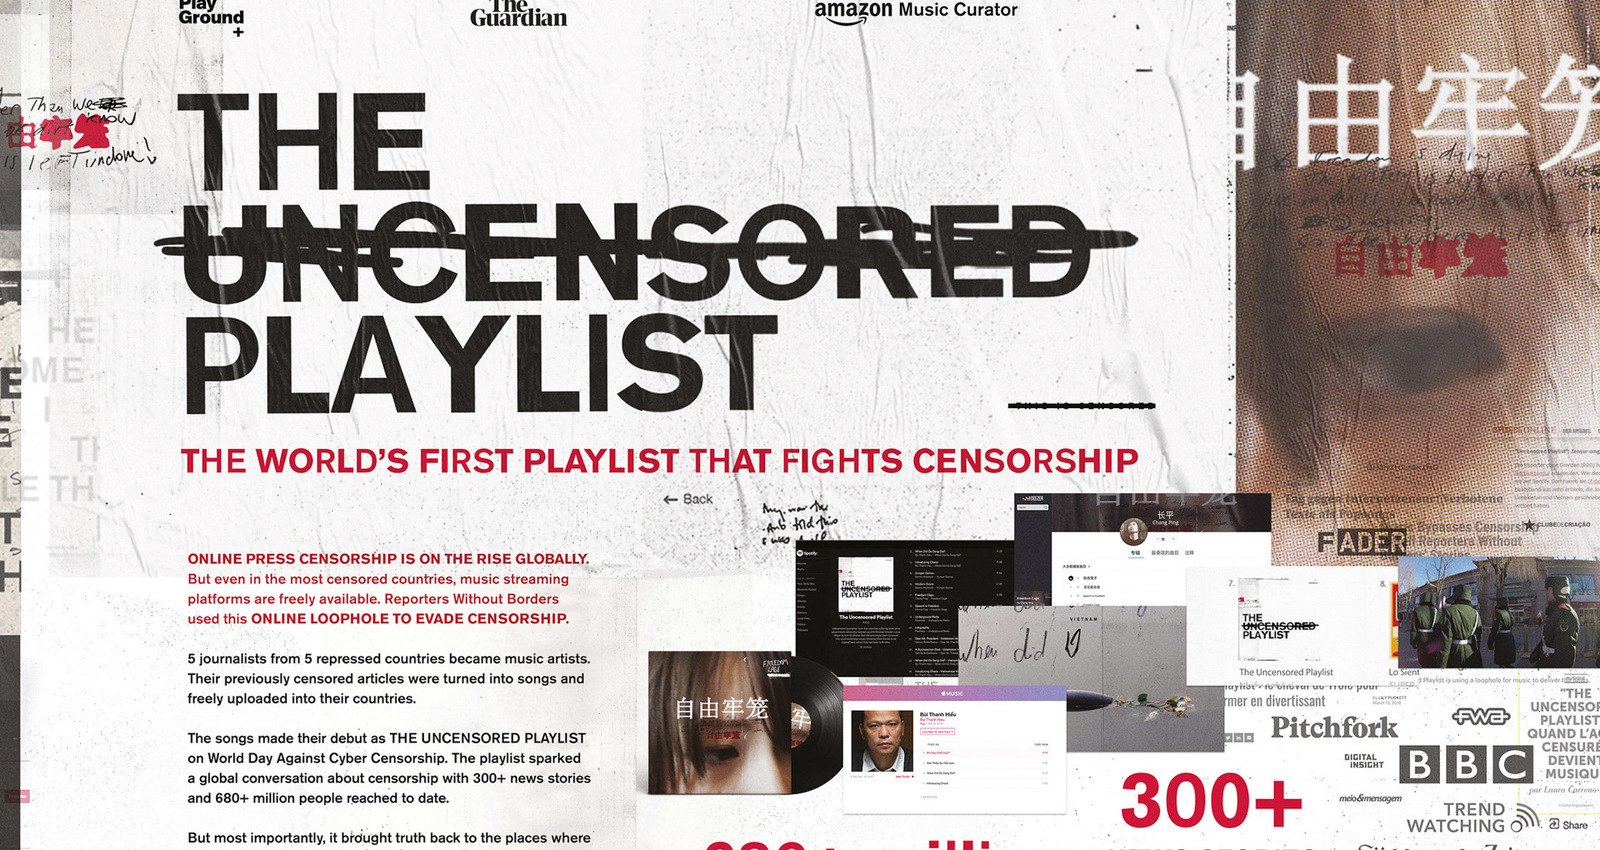 The Uncensored Playlist